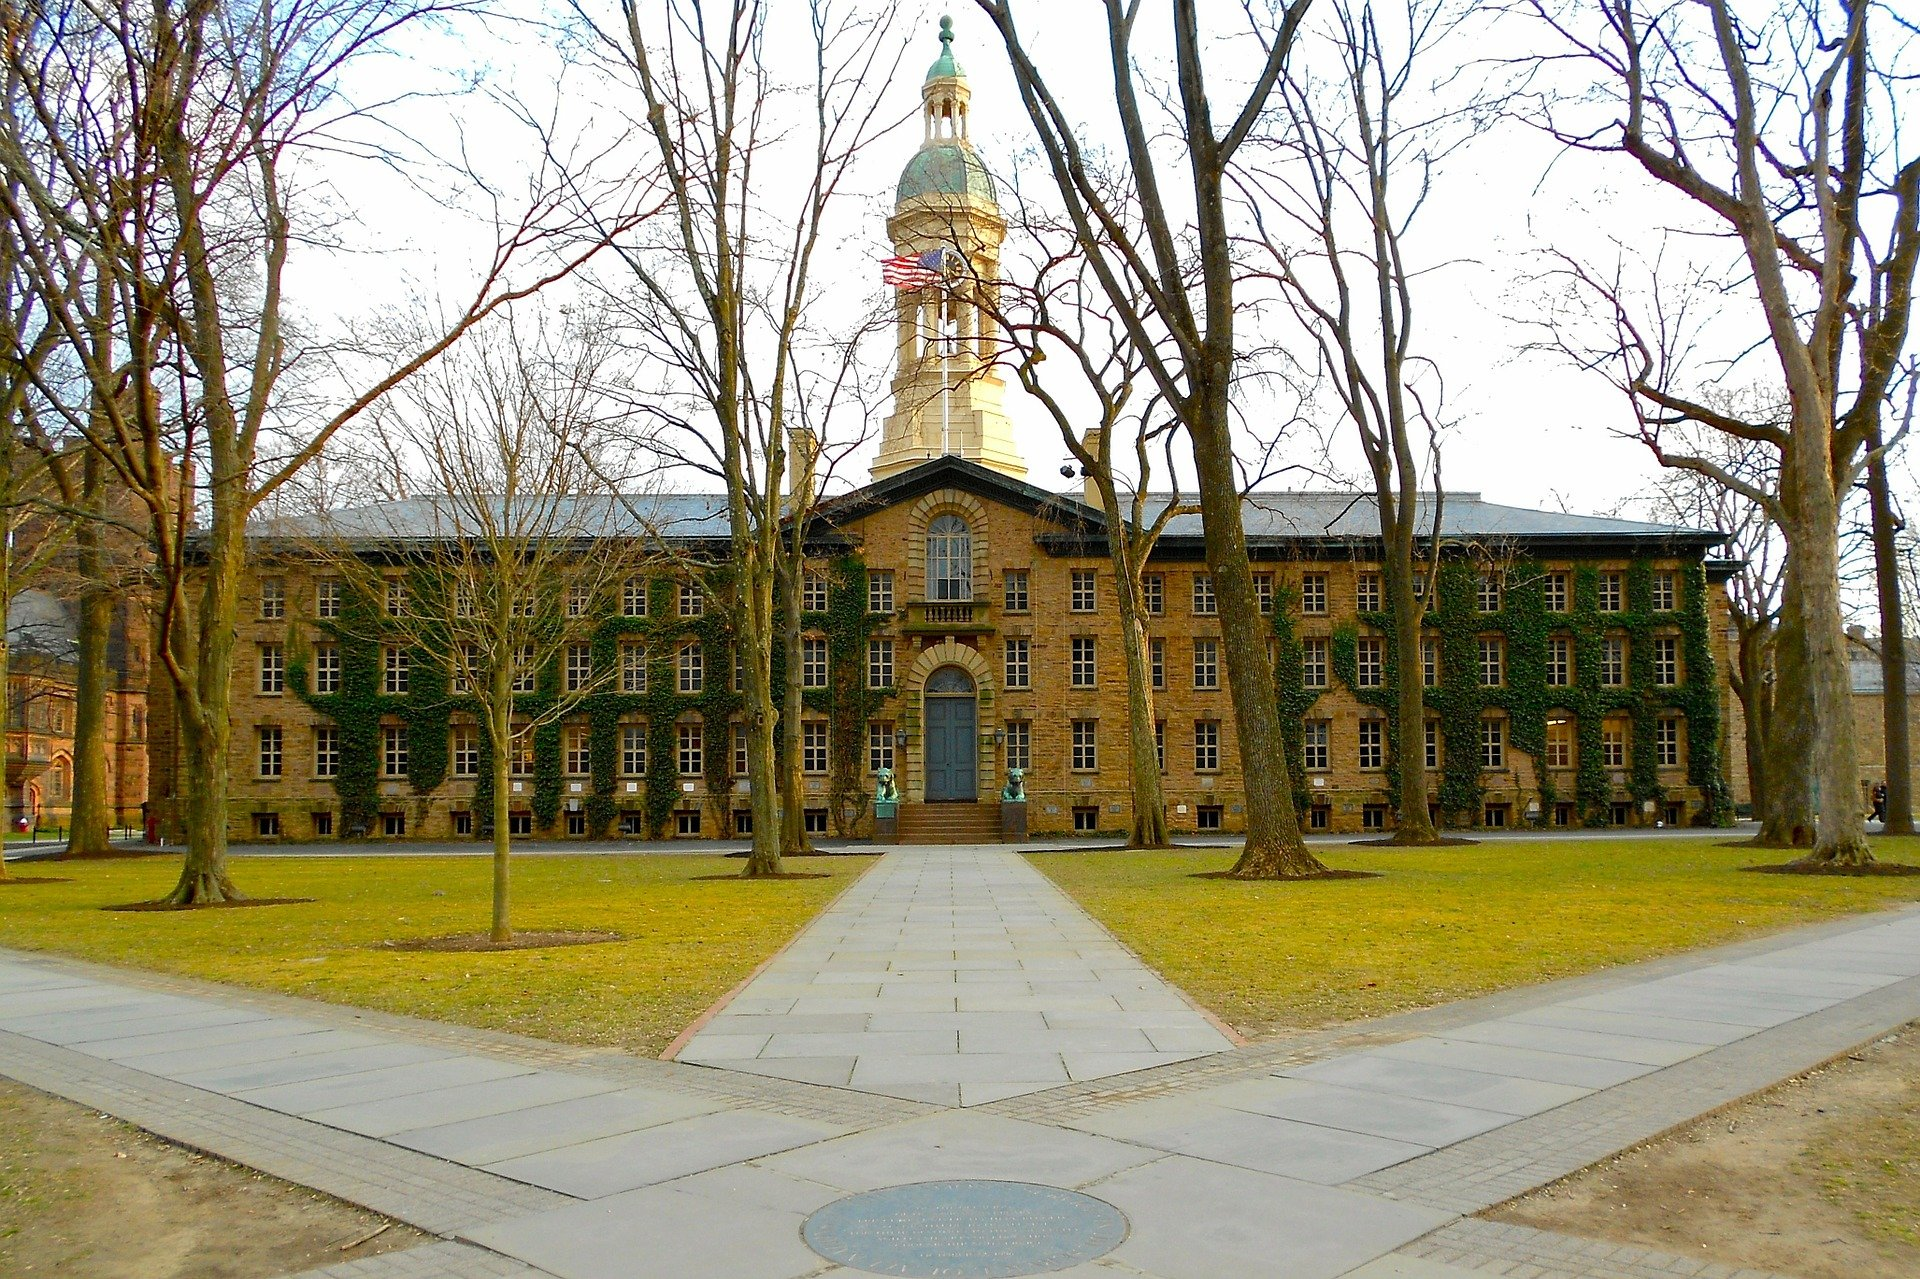 The Nassau Hall in Princeton